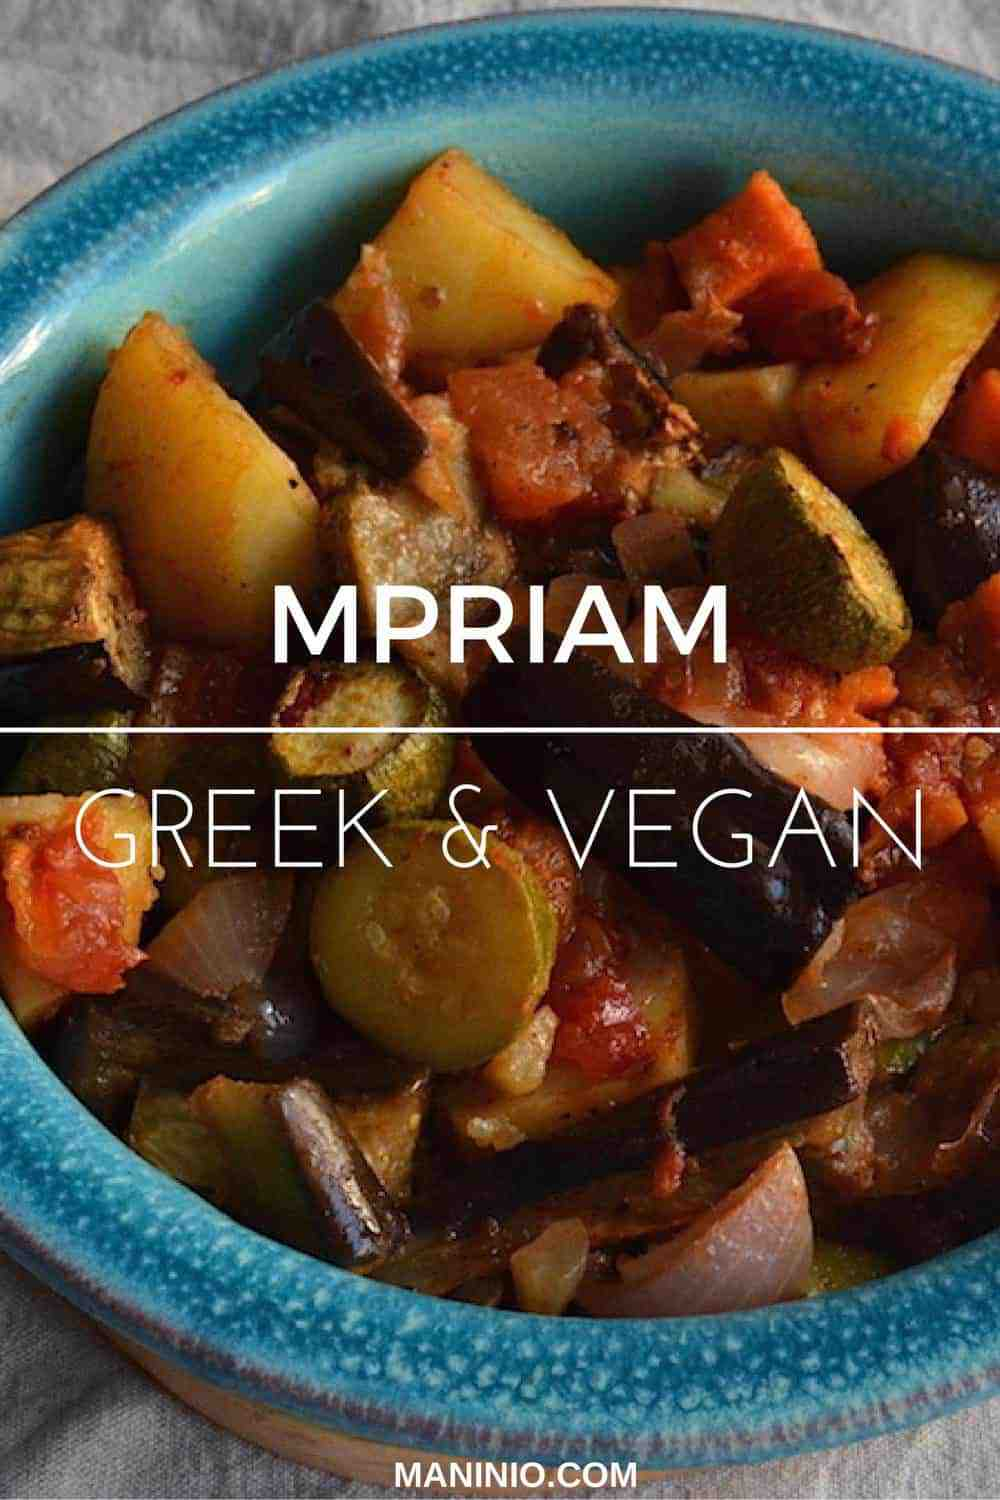 Mpriam – Greek & Vegan